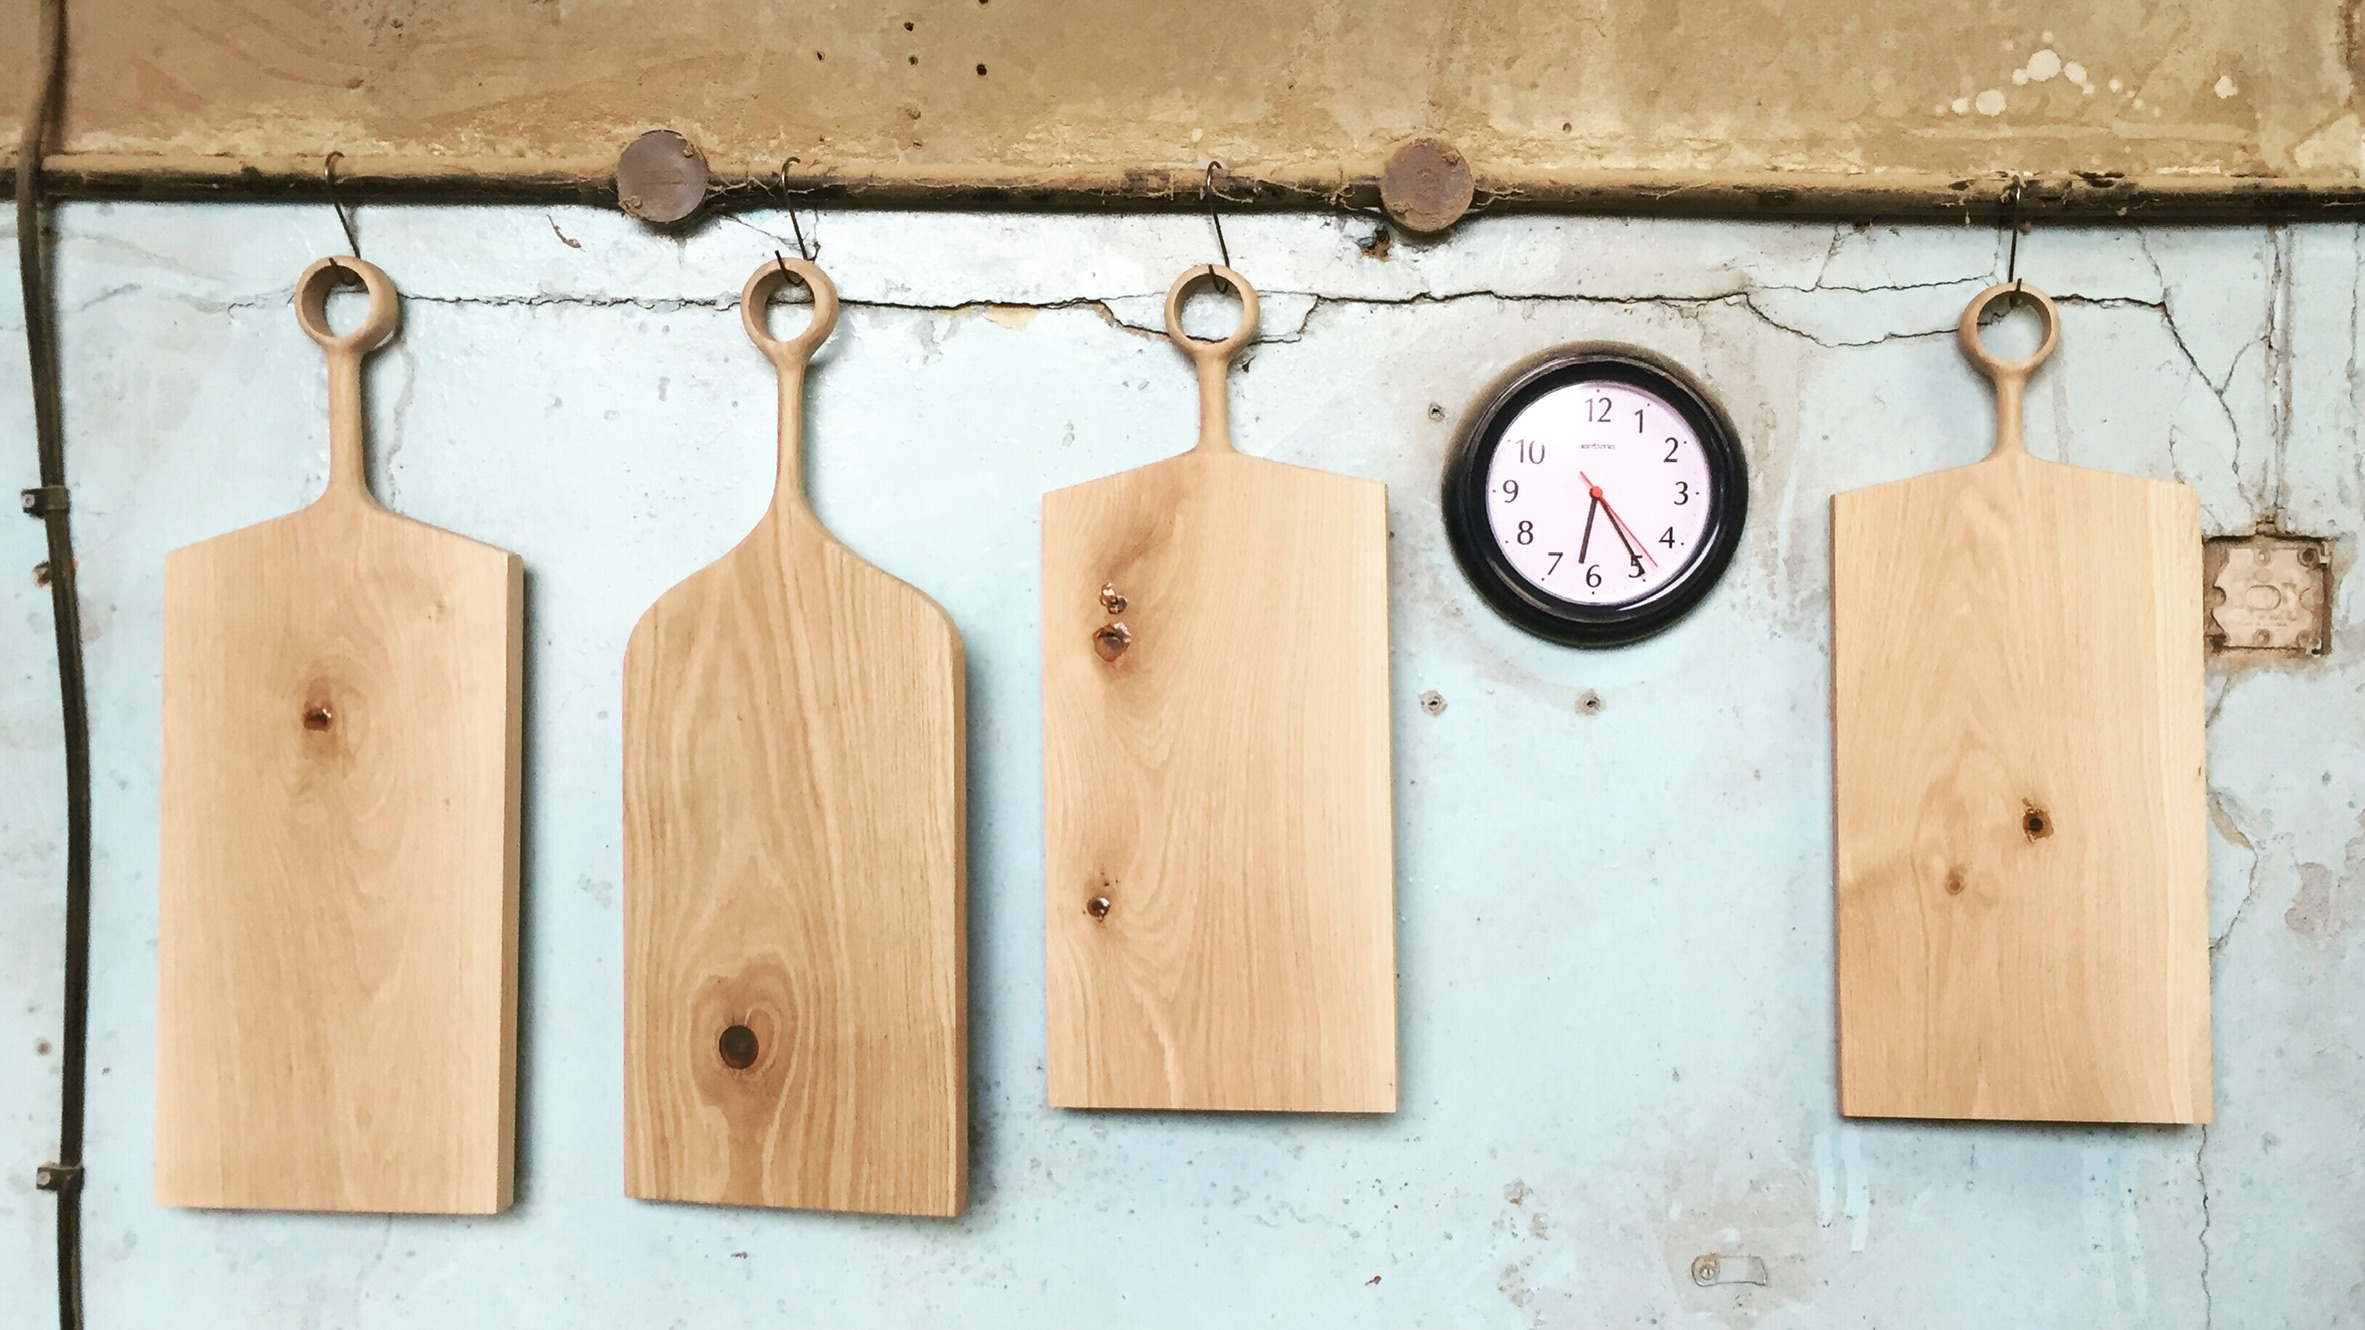 Oak chopping boards handmade from single pieces of wood by wood artist and carver Jamie Gaunt in the